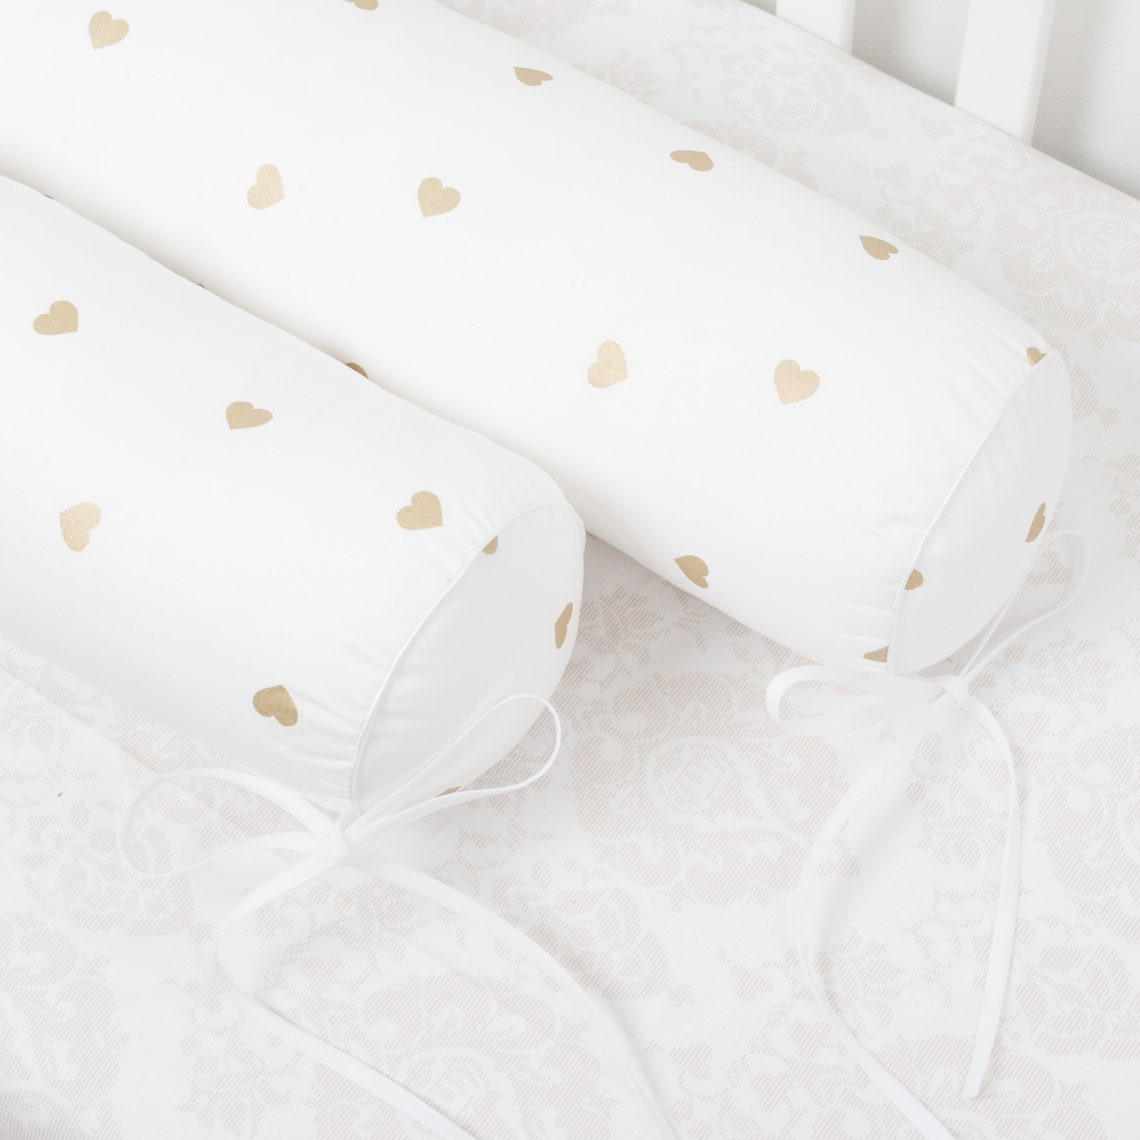 Set of 4 bolster pillows for the Twin size bed bumpers floor bed Full size teepee Montessori House cabin bumper pillows house cushions crib